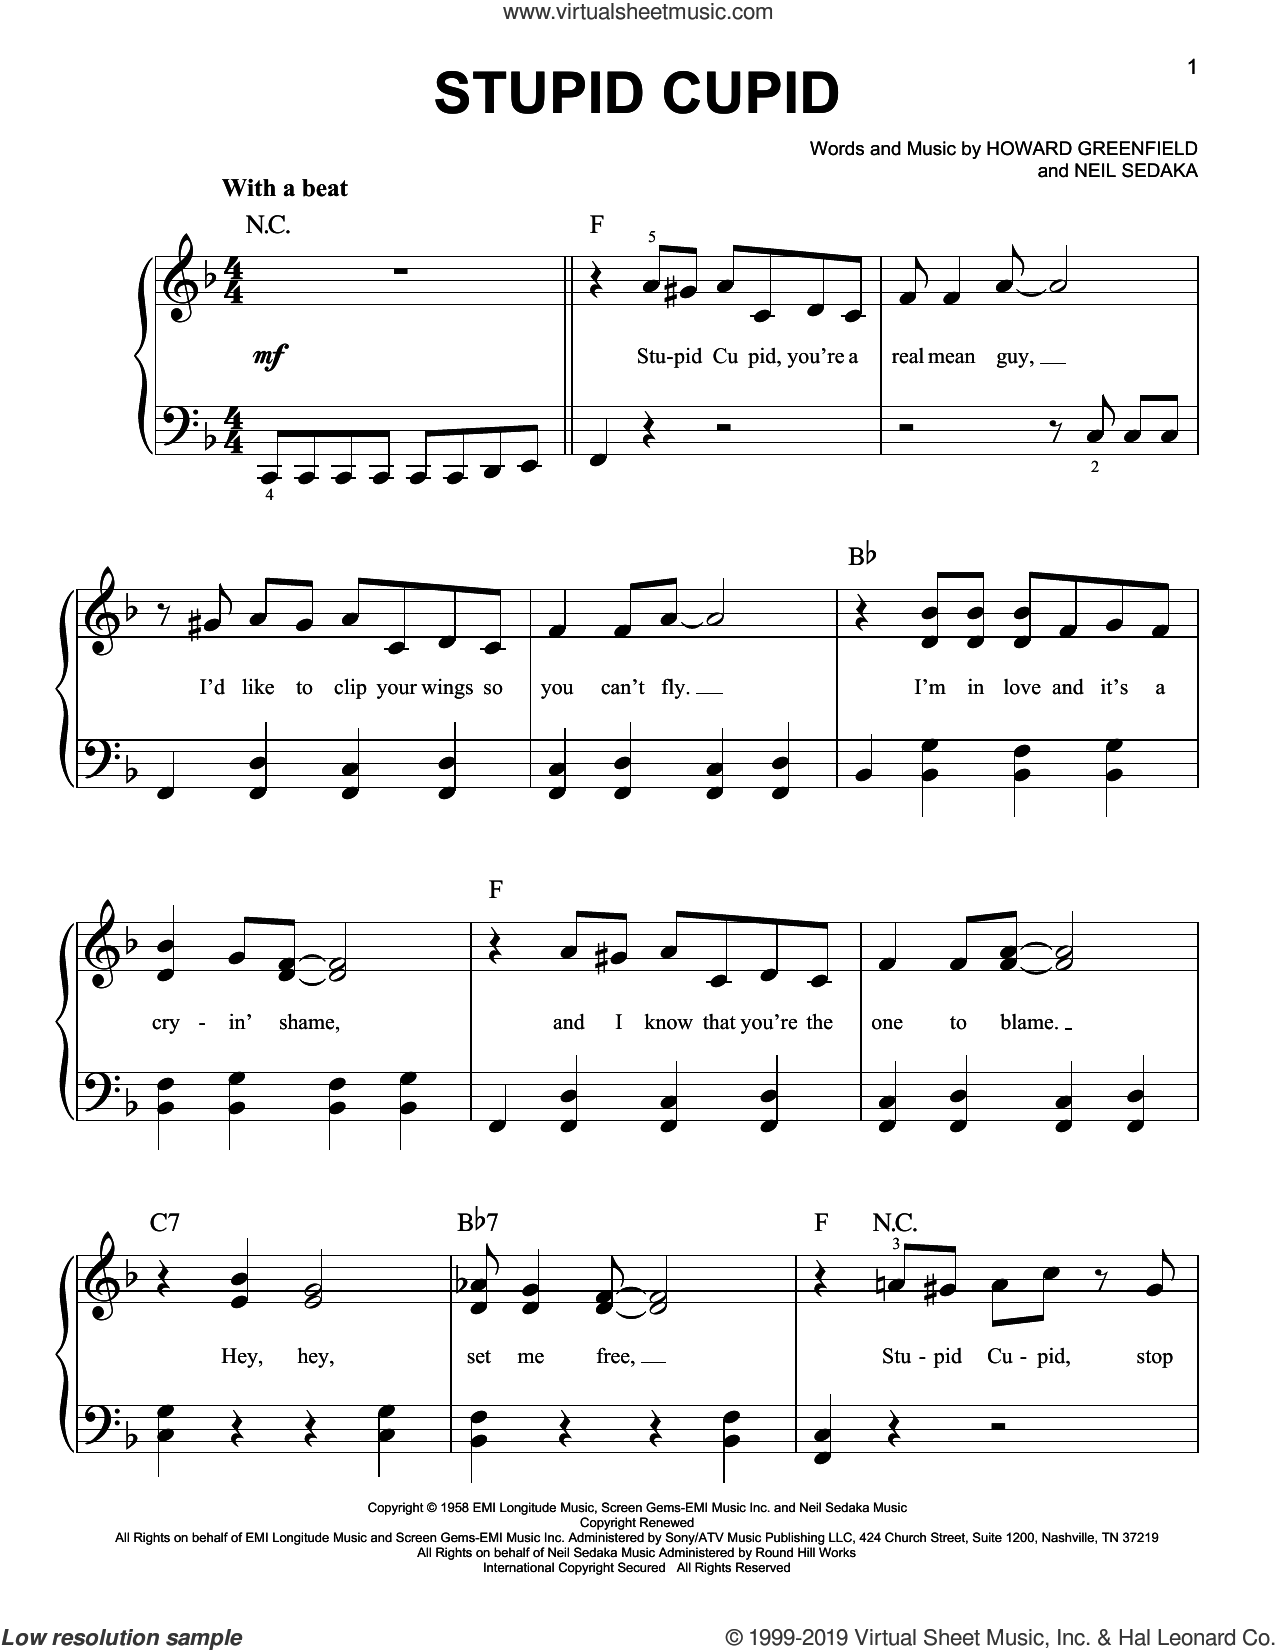 Stupid Cupid sheet music for piano solo by Connie Francis, Howard Greenfield and Neil Sedaka, easy skill level